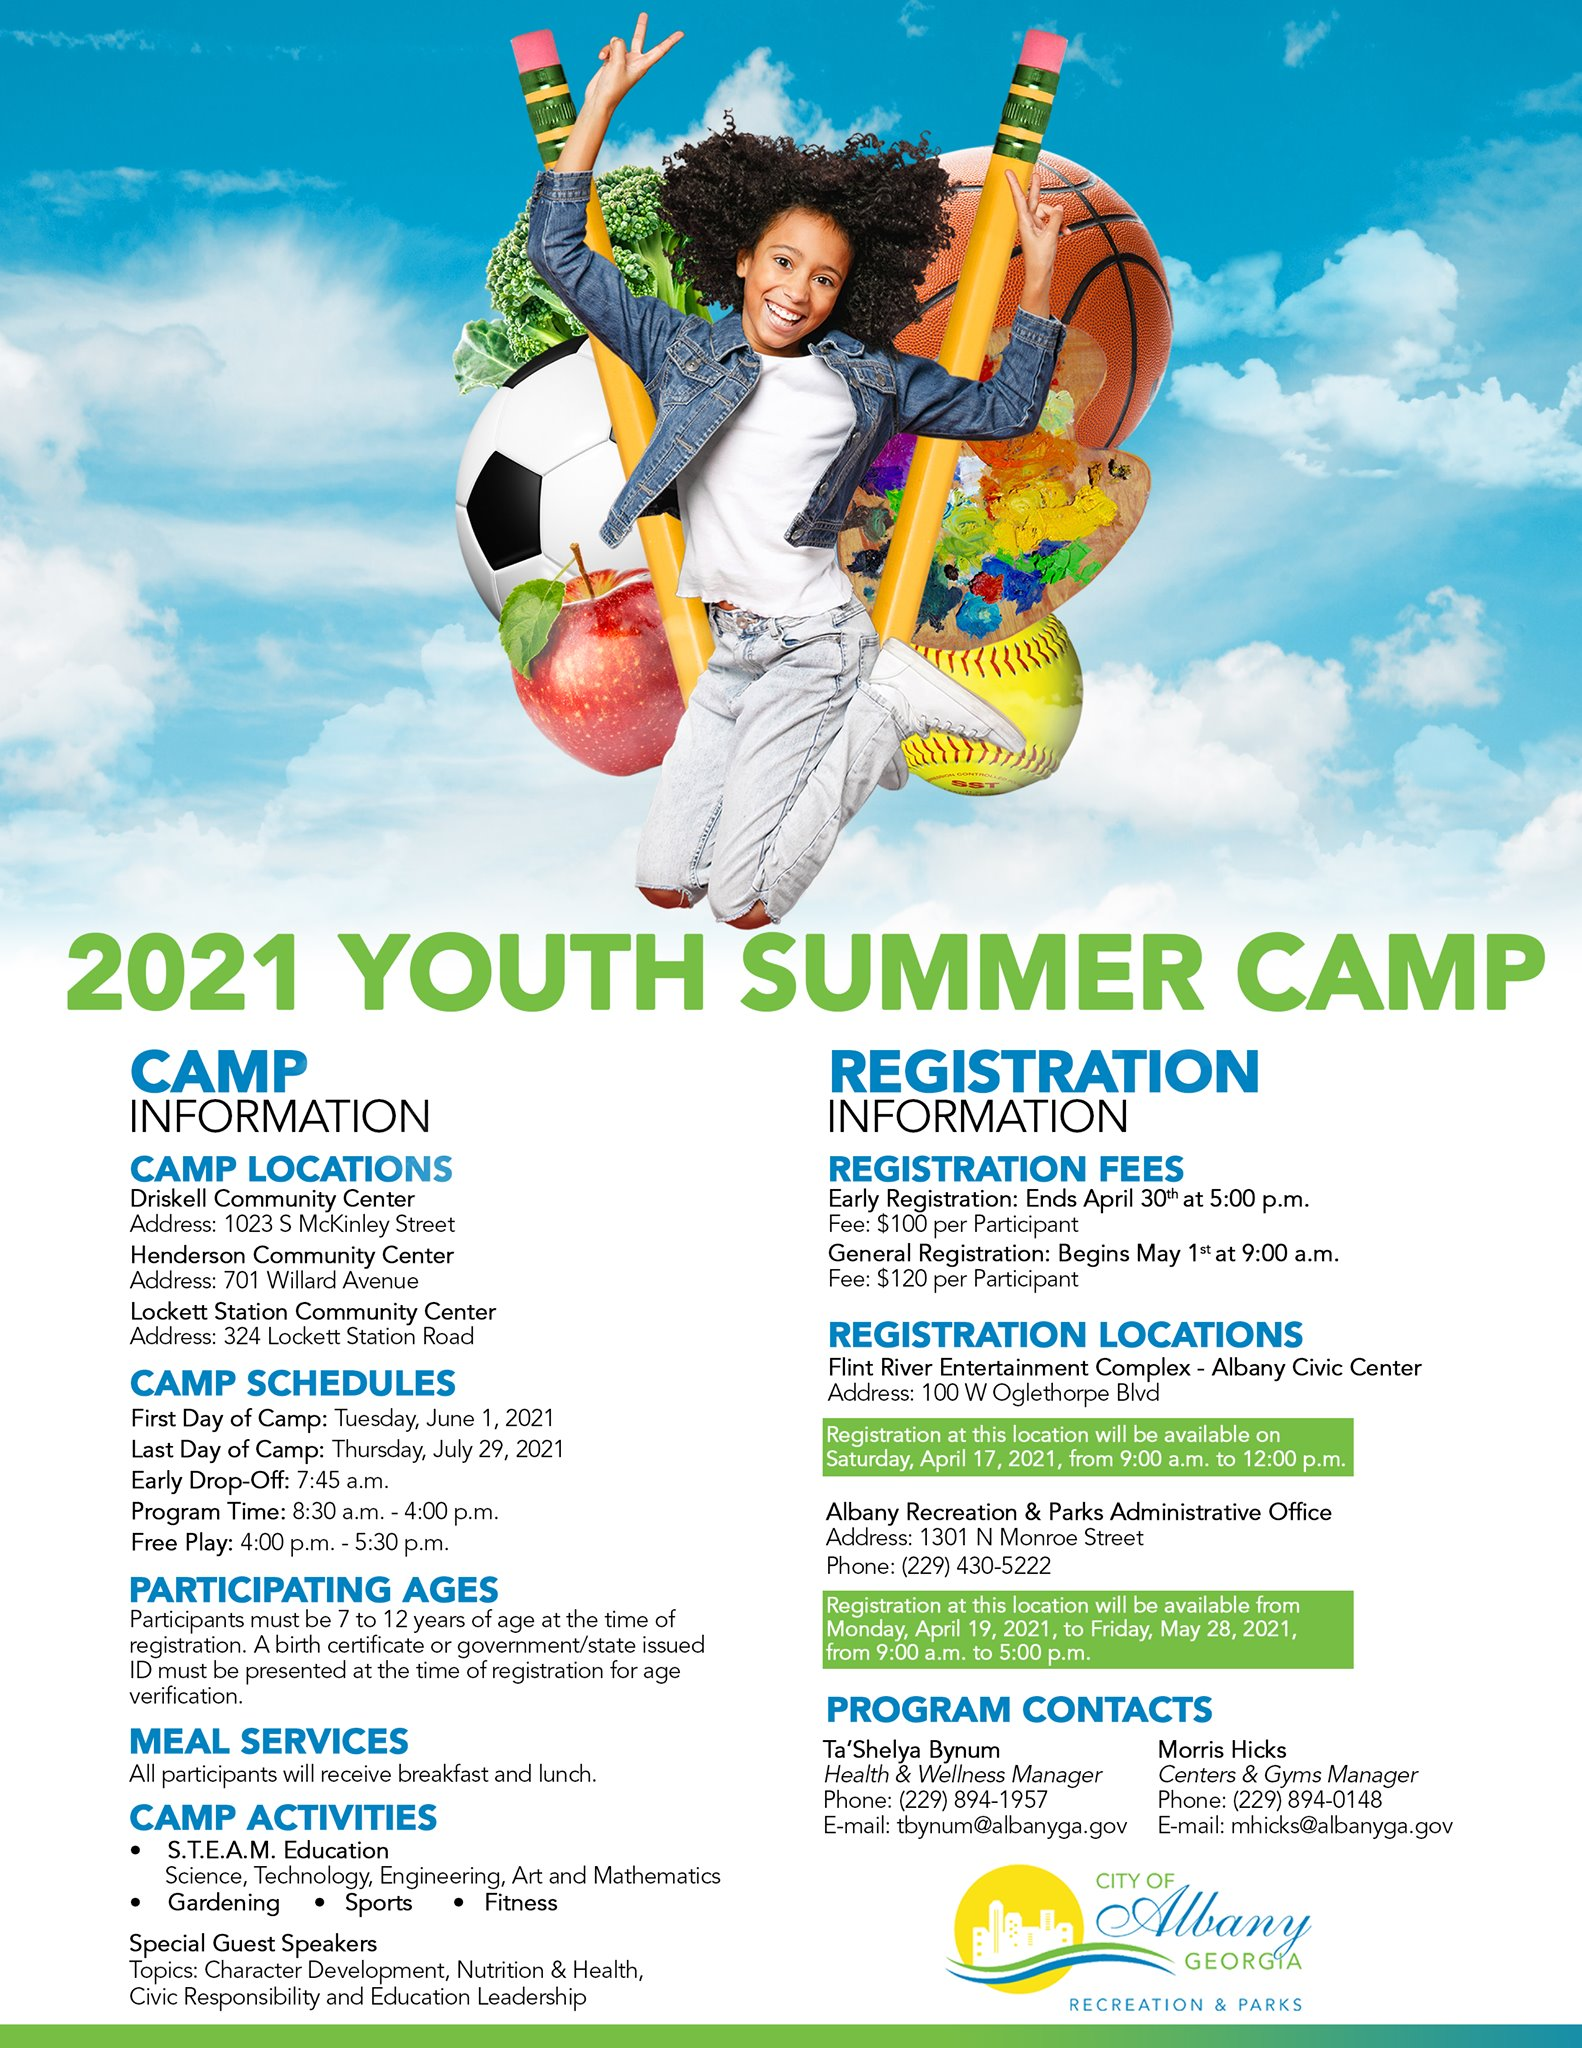 2021 Youth Summer Camp